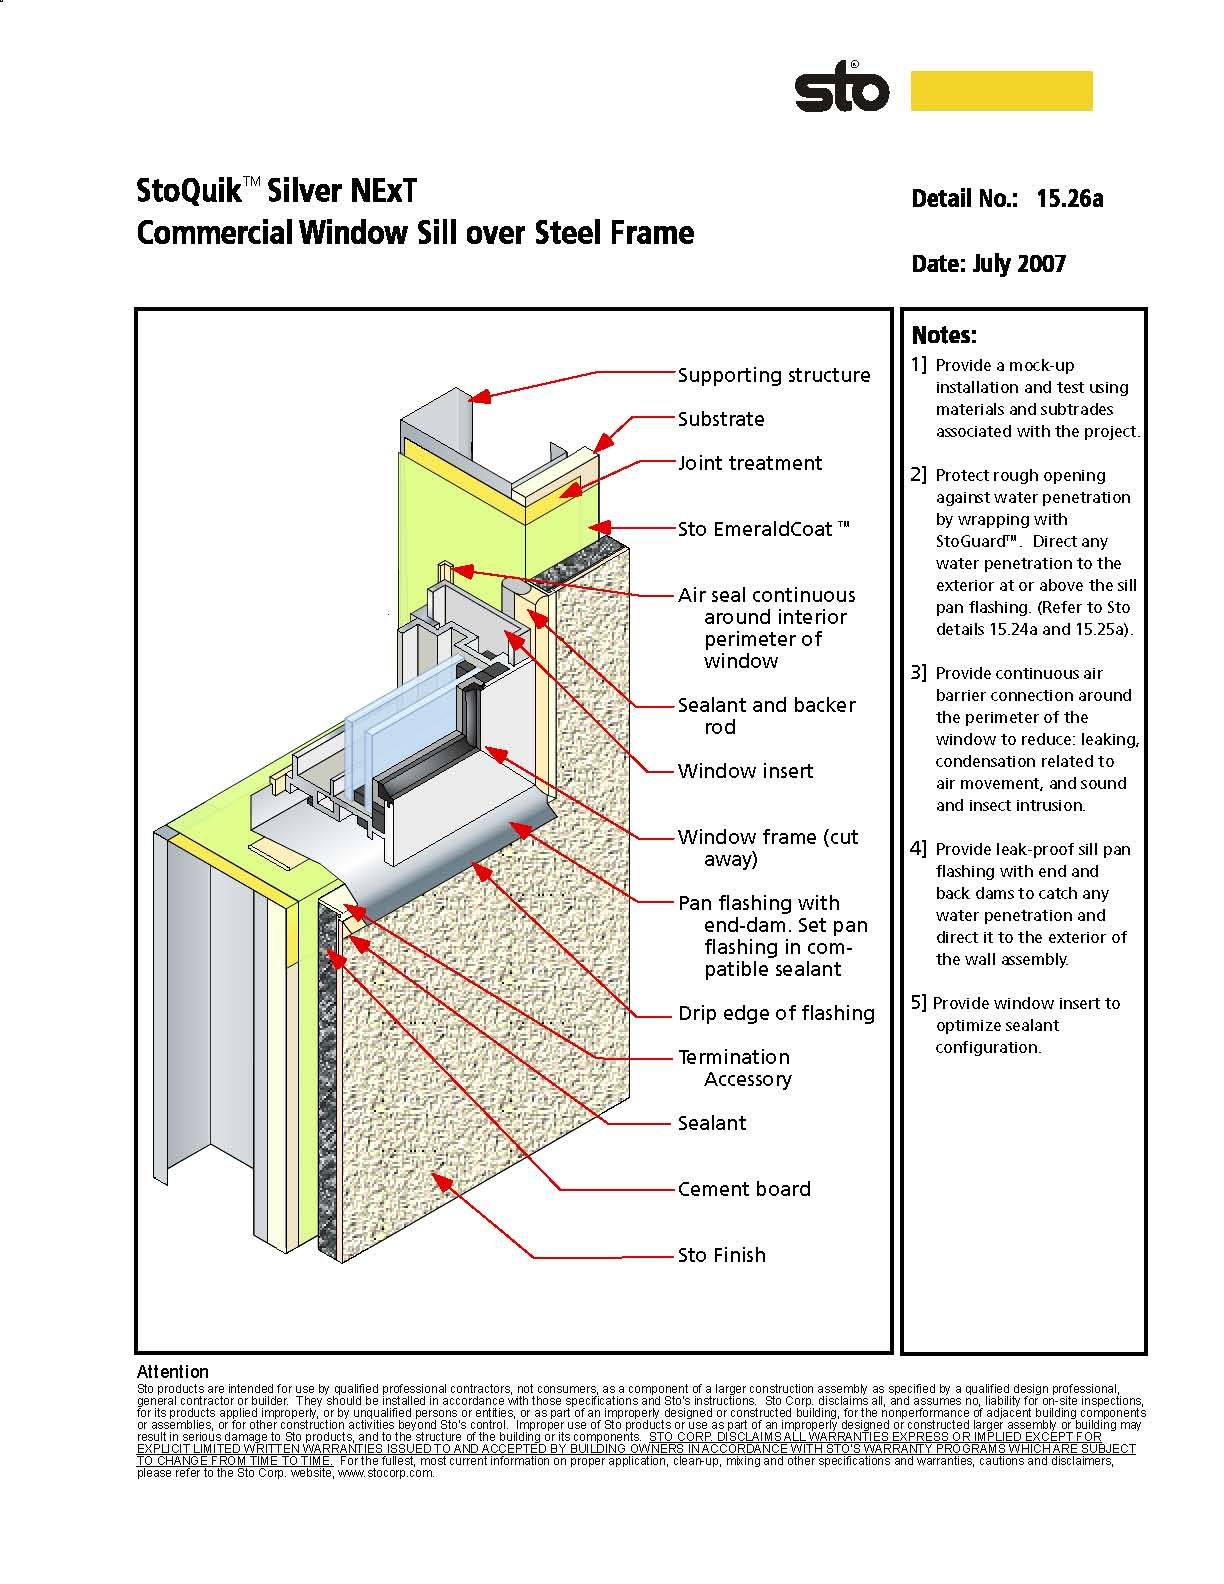 Sto wall section over steel frame diagrams drawings for Bow window construction detail